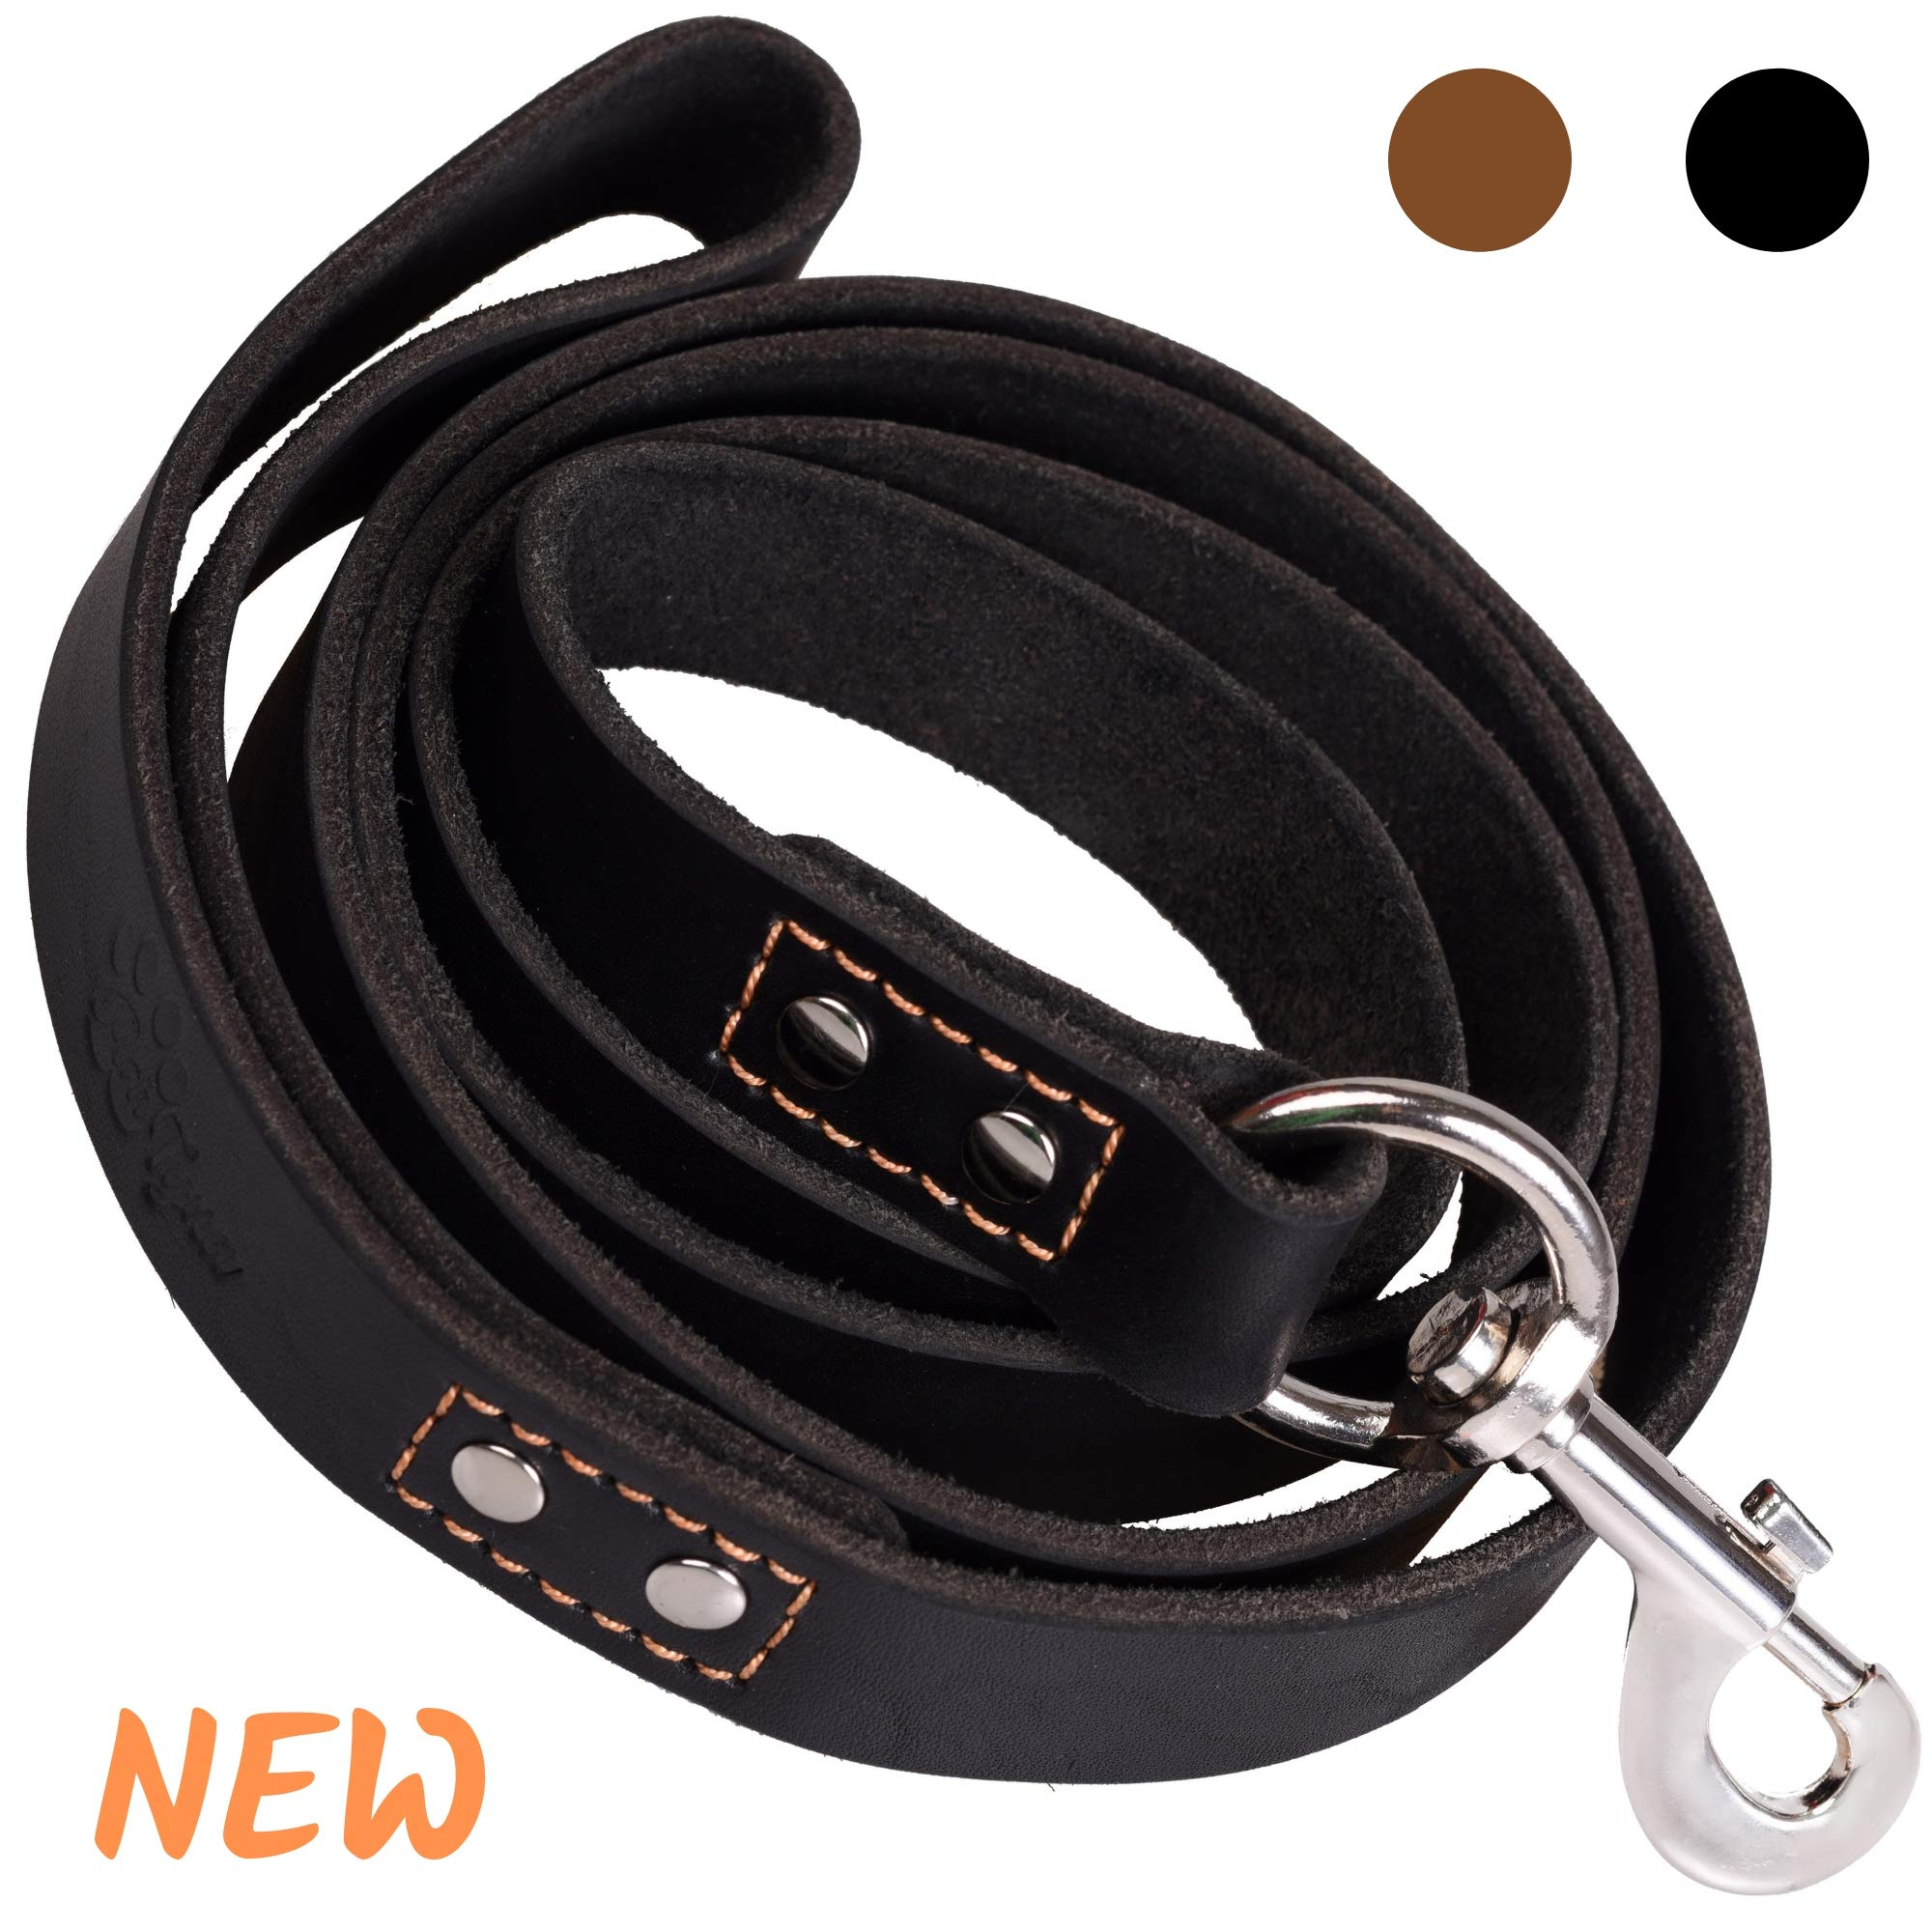 ADITYNA - Heavy Duty Leather Dog Leash 6 Foot - Strong and Soft Leather Leash for Extra Large, Large and Medium Dogs - Dog Training Leash (XL - 6 ft x 1 inch, Black)